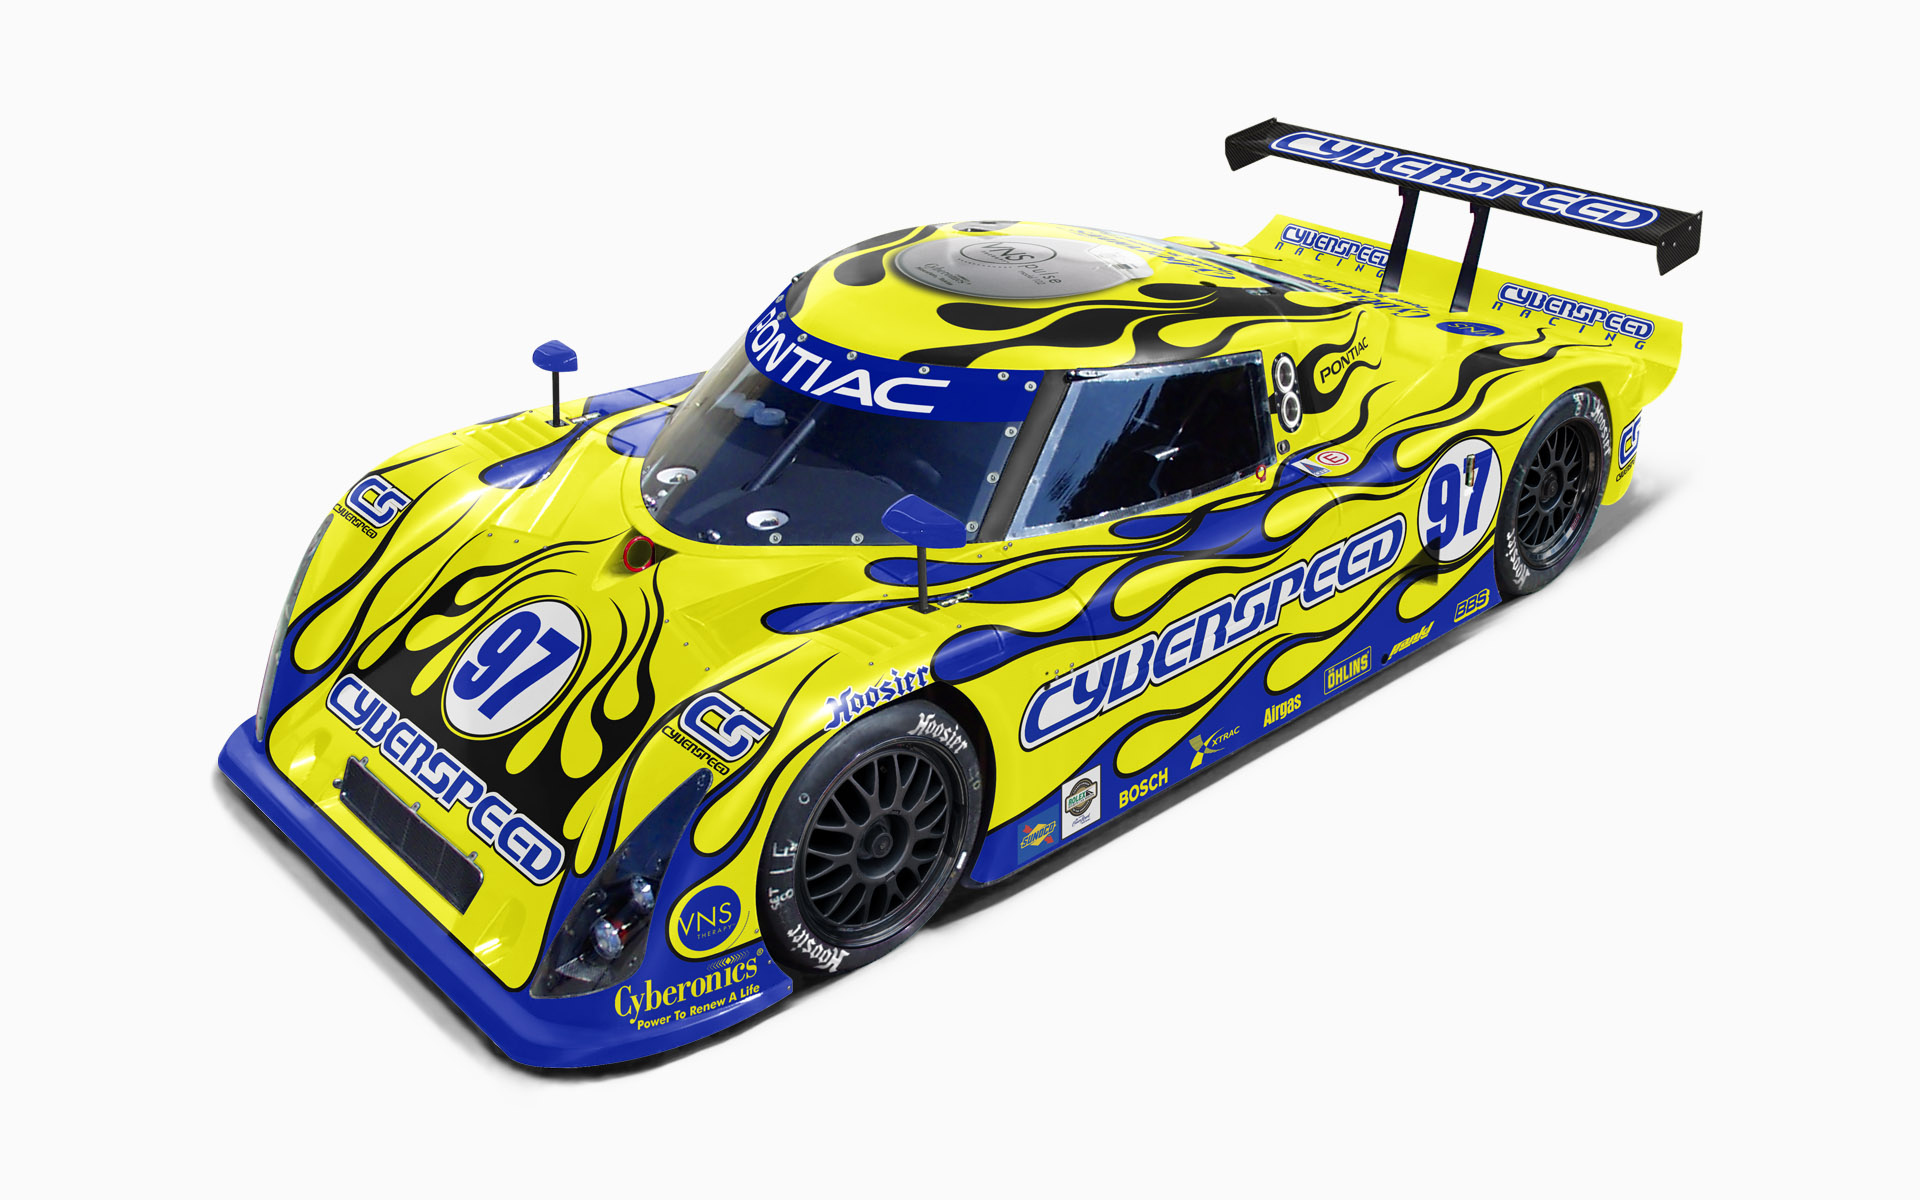 Cyberspeed Racing Riley MKXI Daytona Prototype Livery Visualization